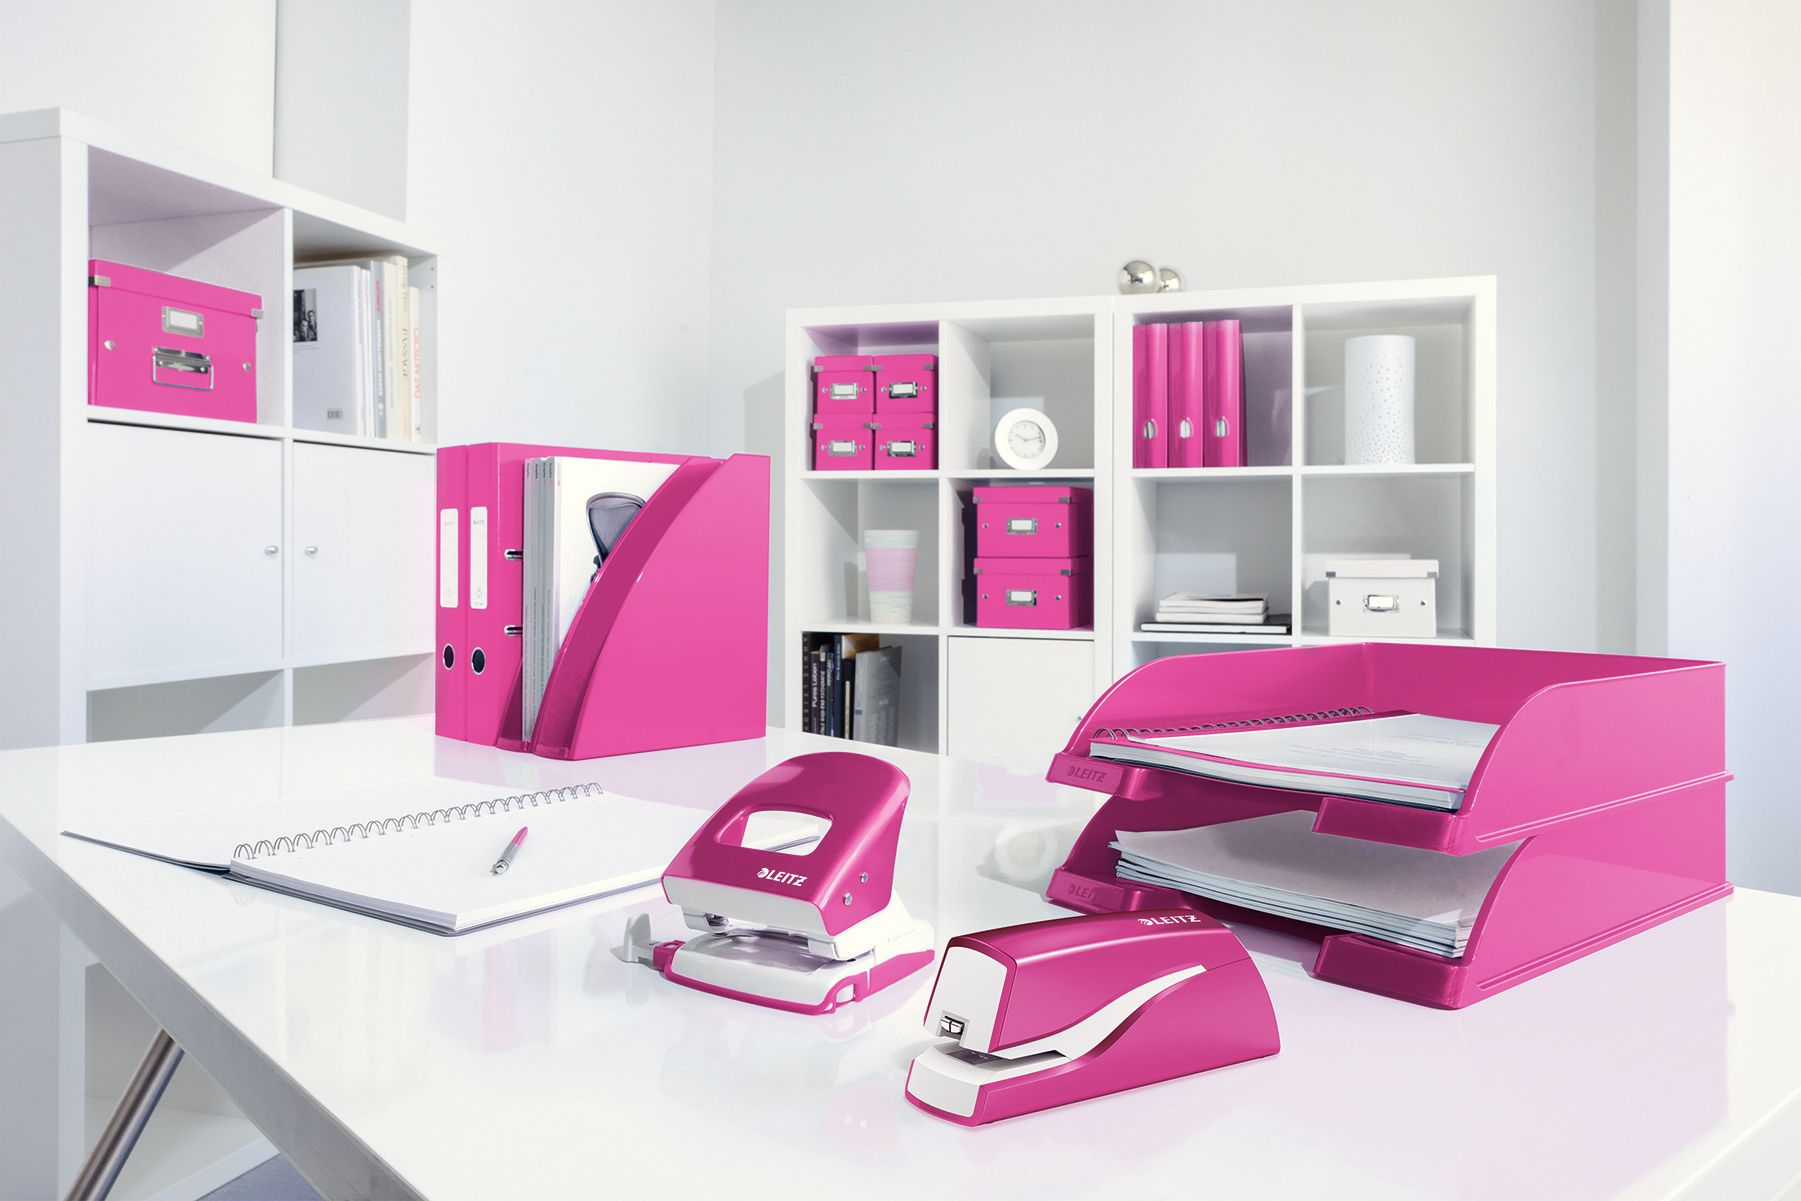 Buromaterial In Der Trendfarbe Pink Pinklovers Pink Leitz